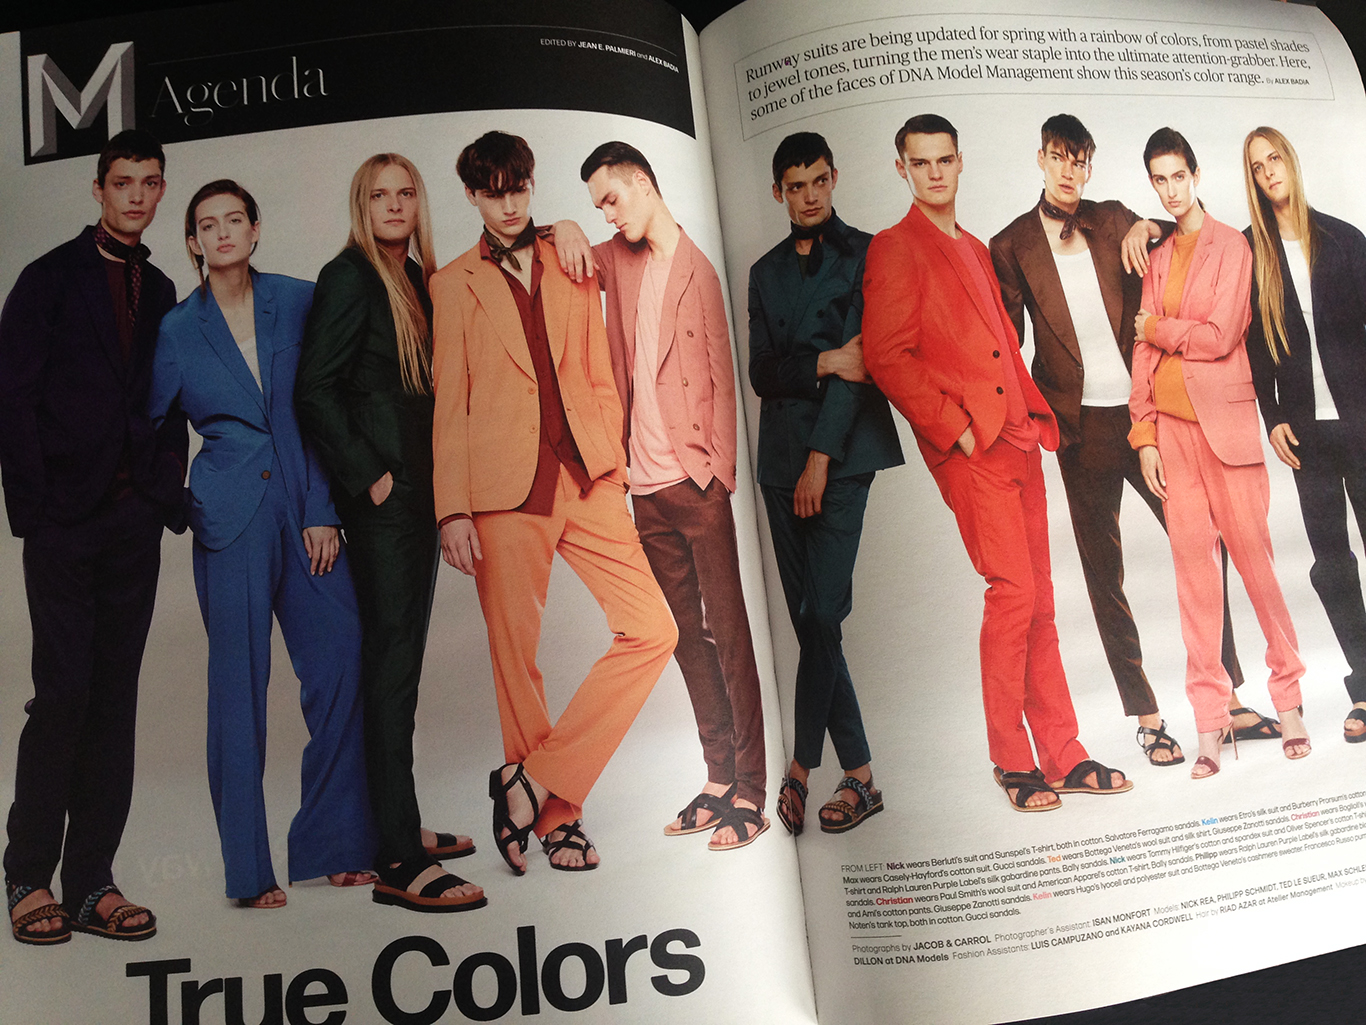 The season's rainbow of suit colors, photographed by Jacob & Carrol. Styled by Alex Badia,  layout by Nick Mrozowski